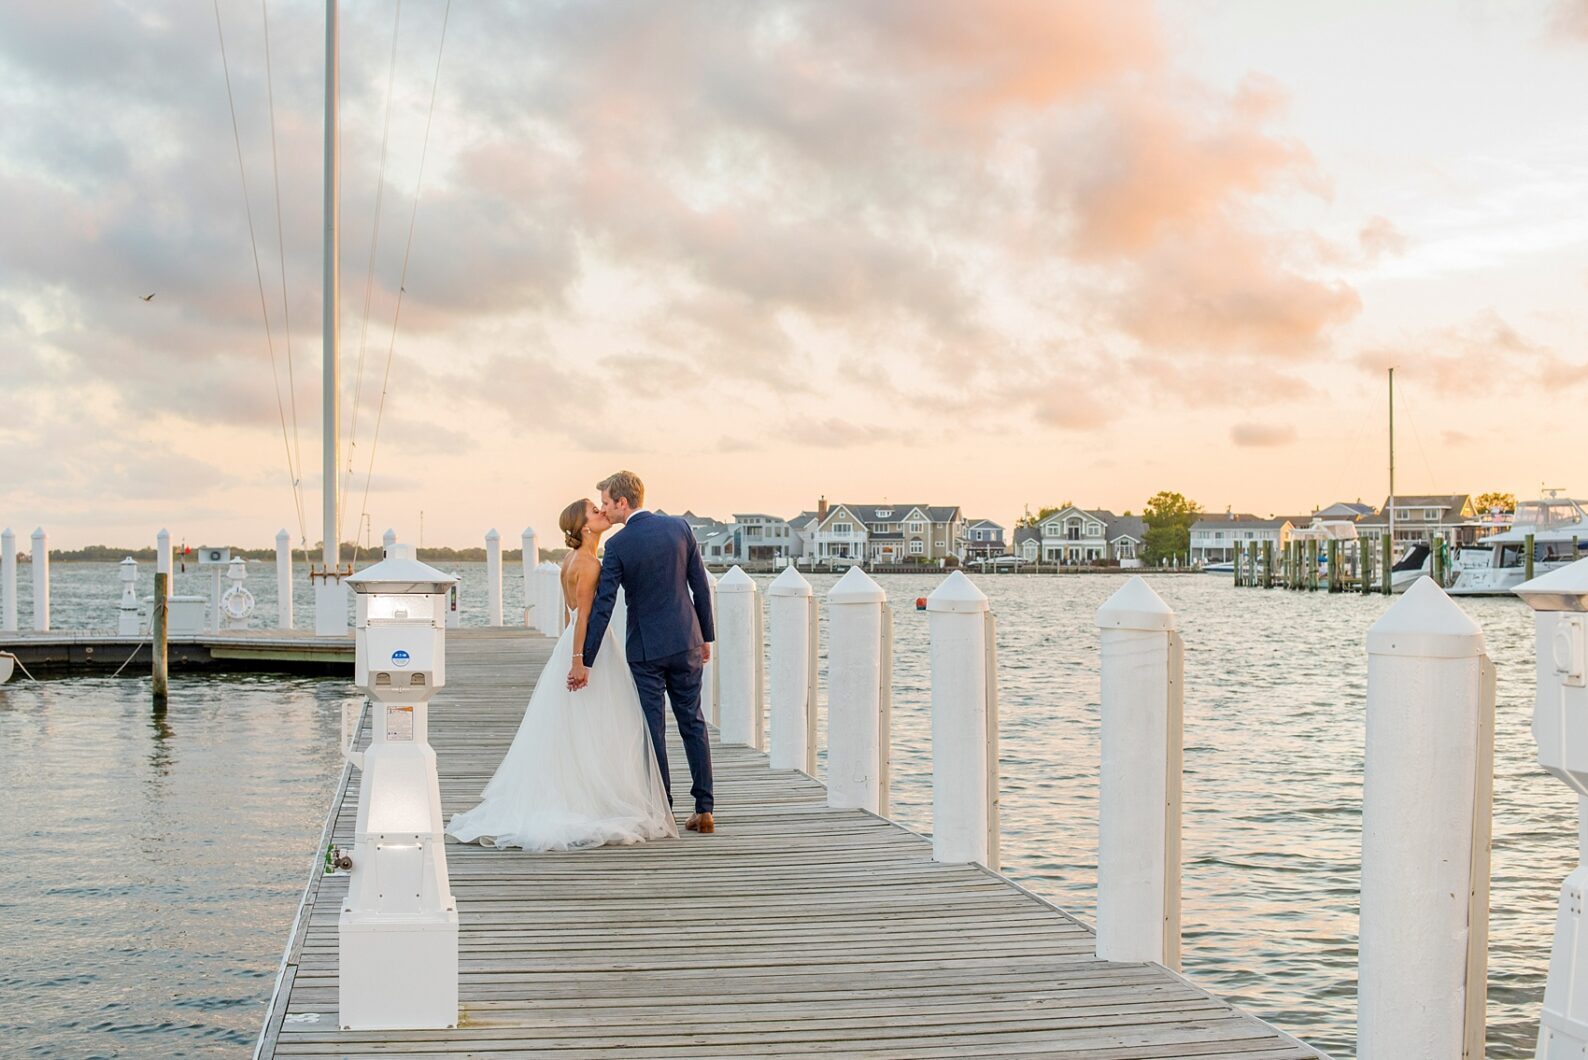 Mikkel Paige Photography sunset bride and groom photo at a wedding at Bay Head Yacht Club on the water in New Jersey.